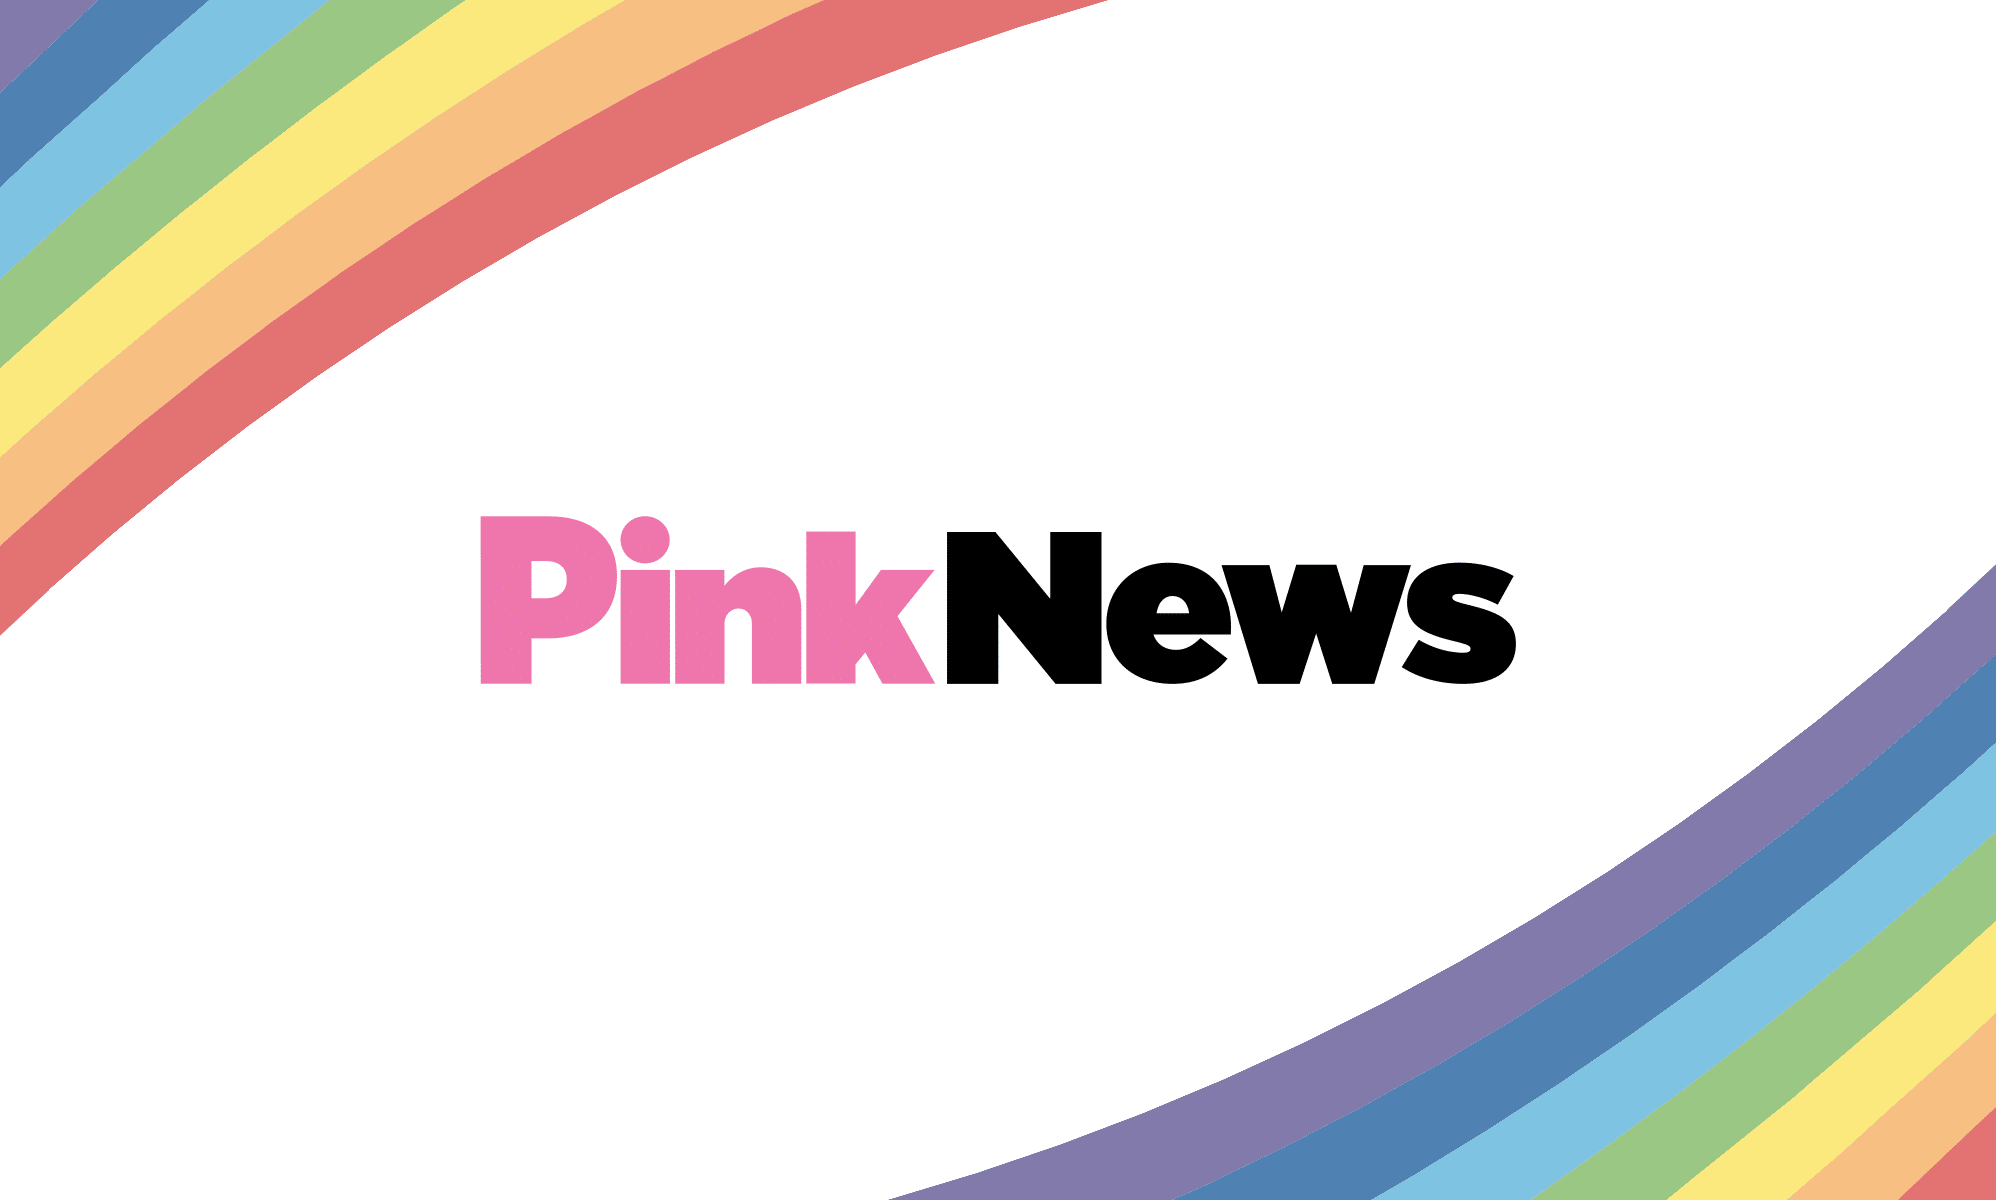 Tune in here to watch the PinkNews Debate with Evan Davis